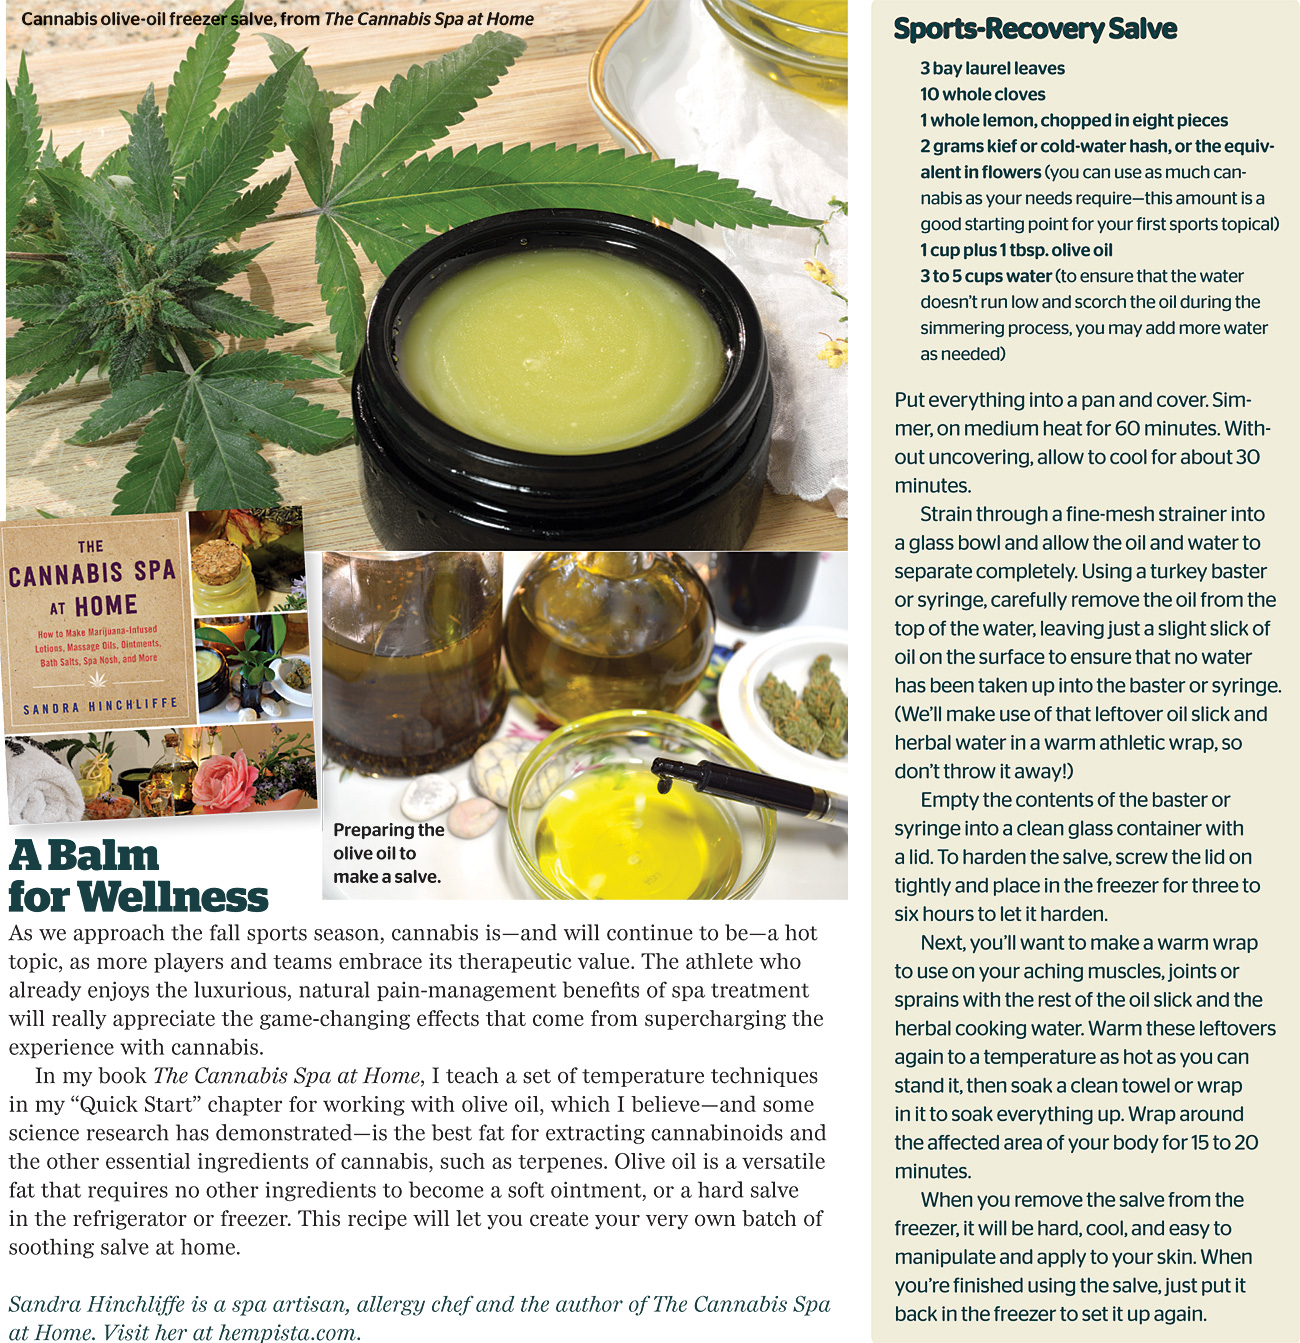 Cannabis Sports Recovery Salve Recipe–Featured in August 2016 High Times!